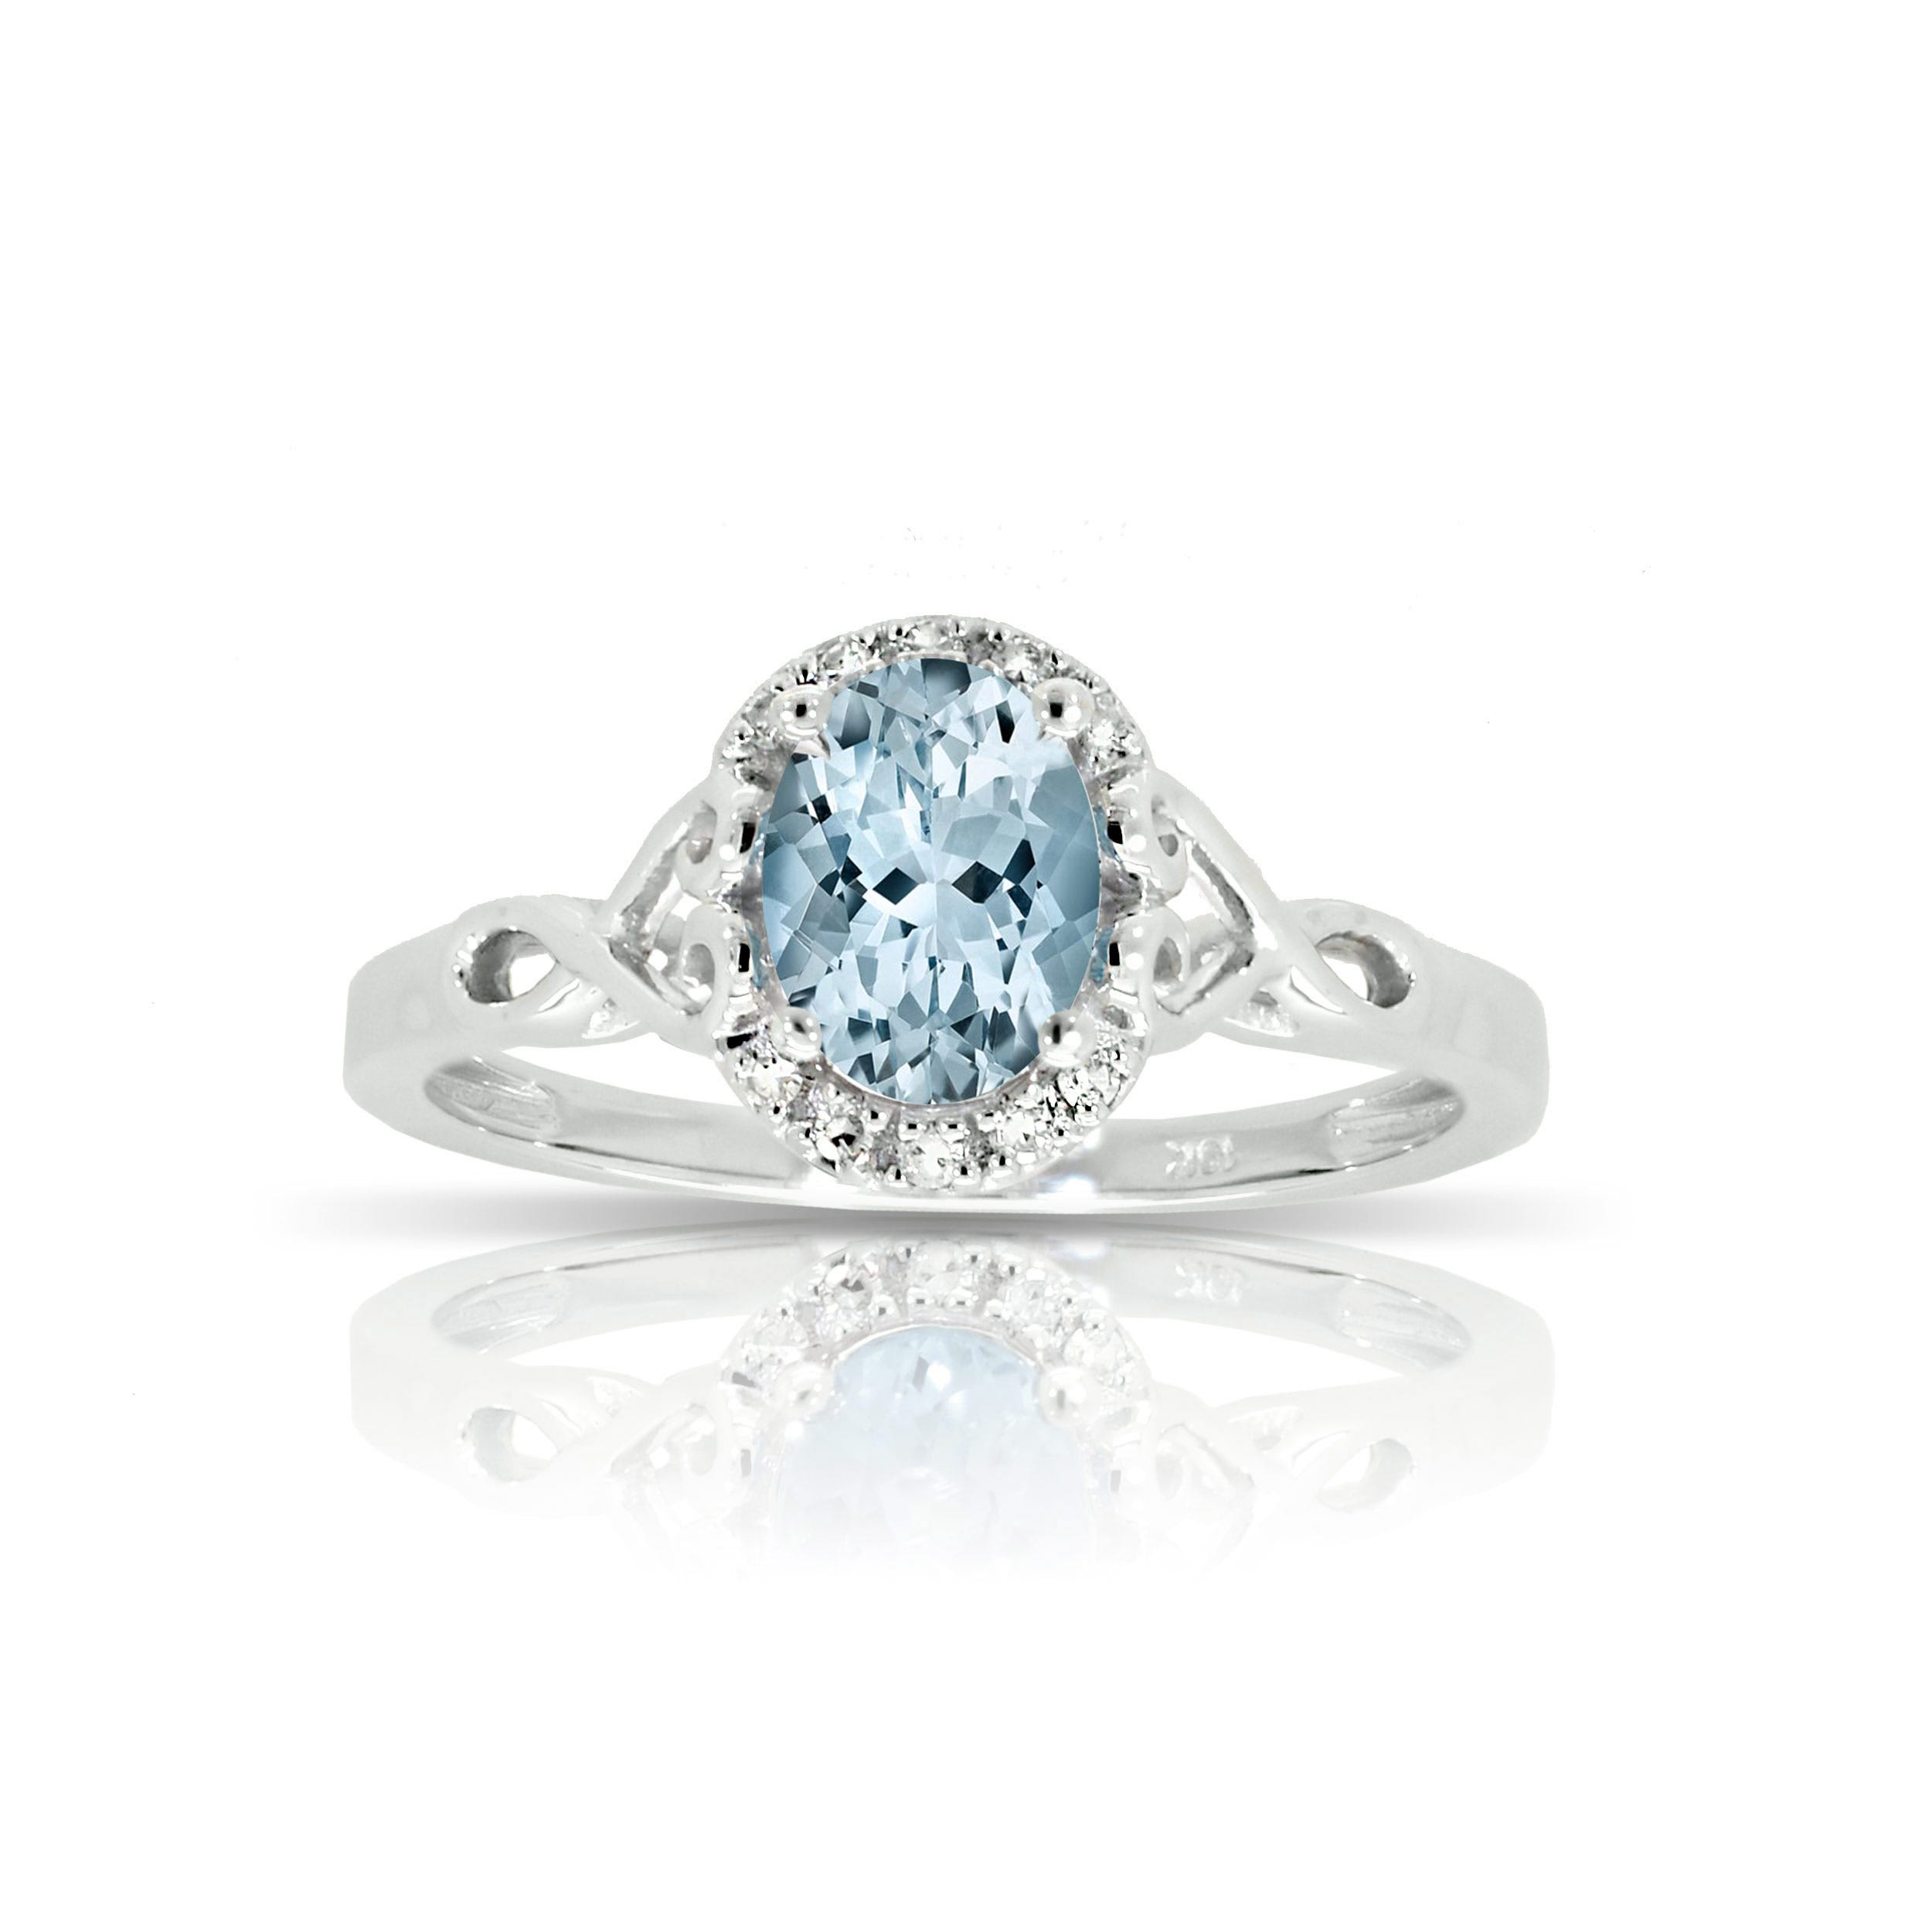 Aquamarine & Diamond Halo Oval Ring in 10k White Gold